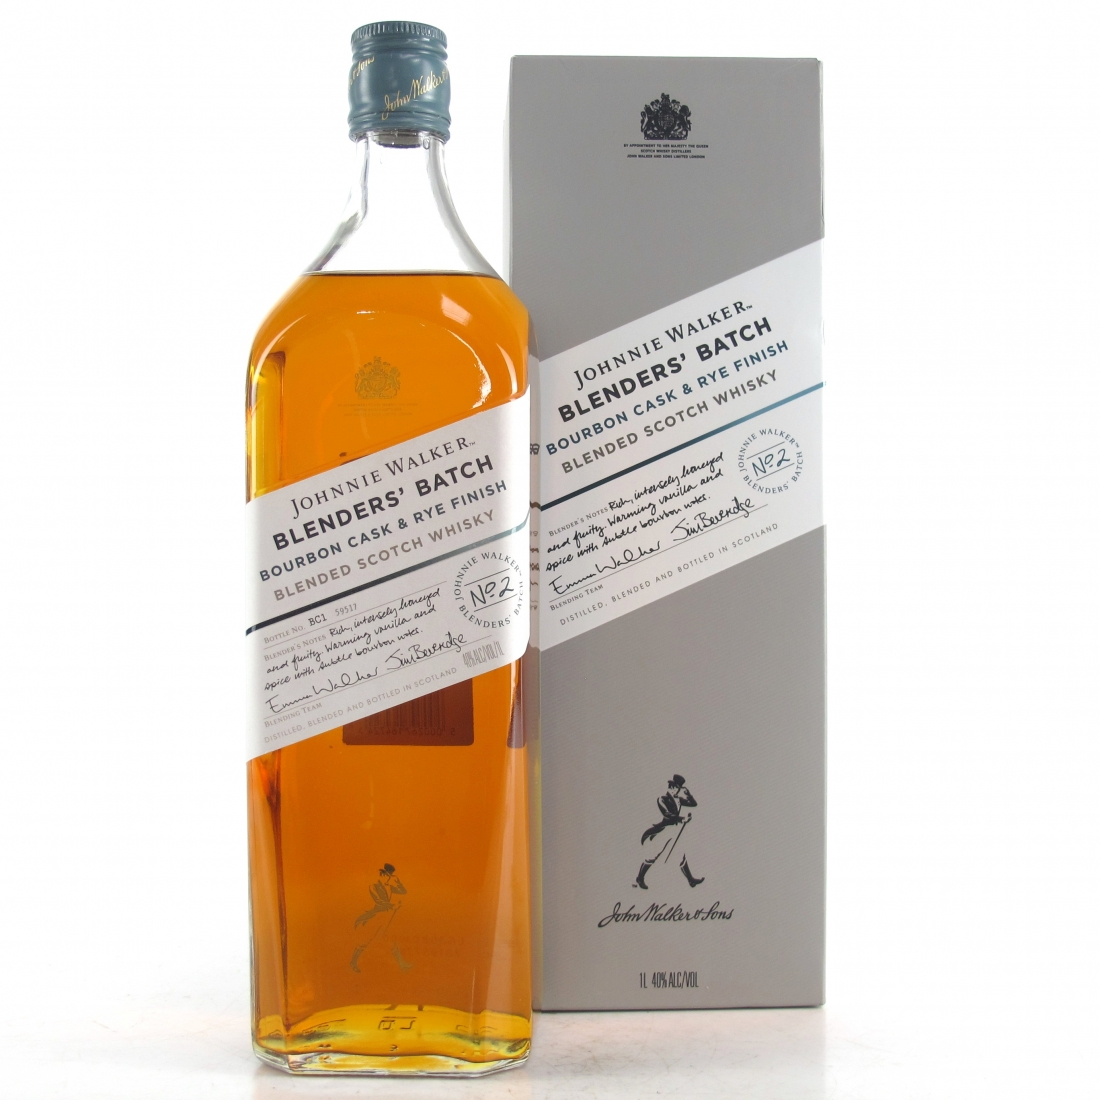 Johnnie Walker Blenders' Batch #2 Bourbon Cask & Rye Finish 1 Litre